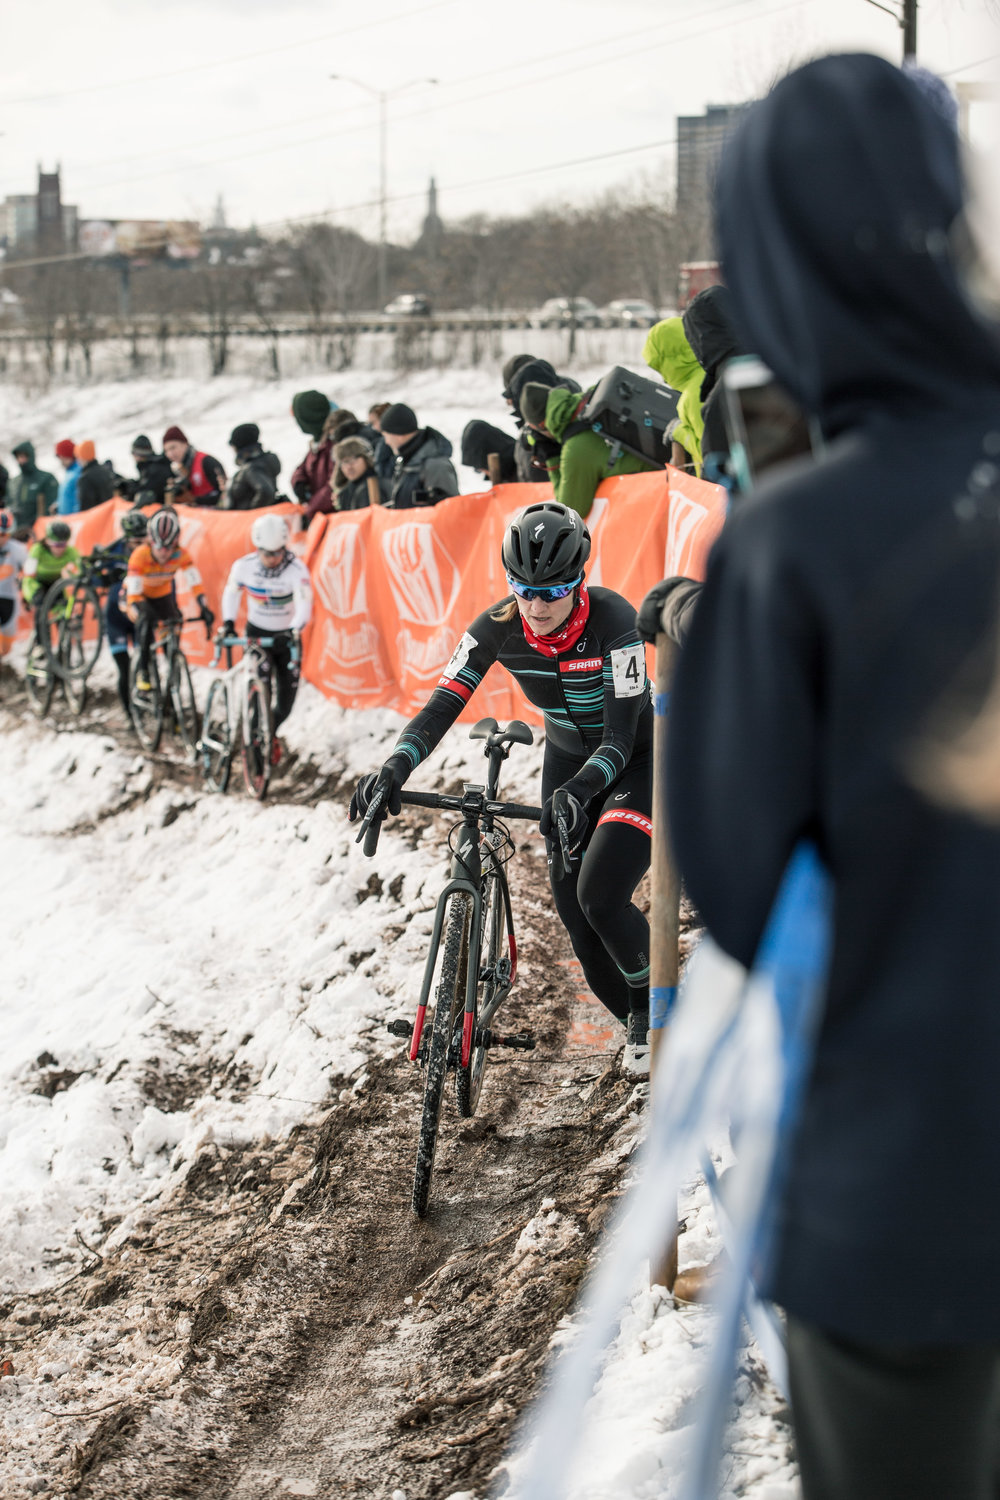 CX_NATS-Jan2017-web-2.jpg